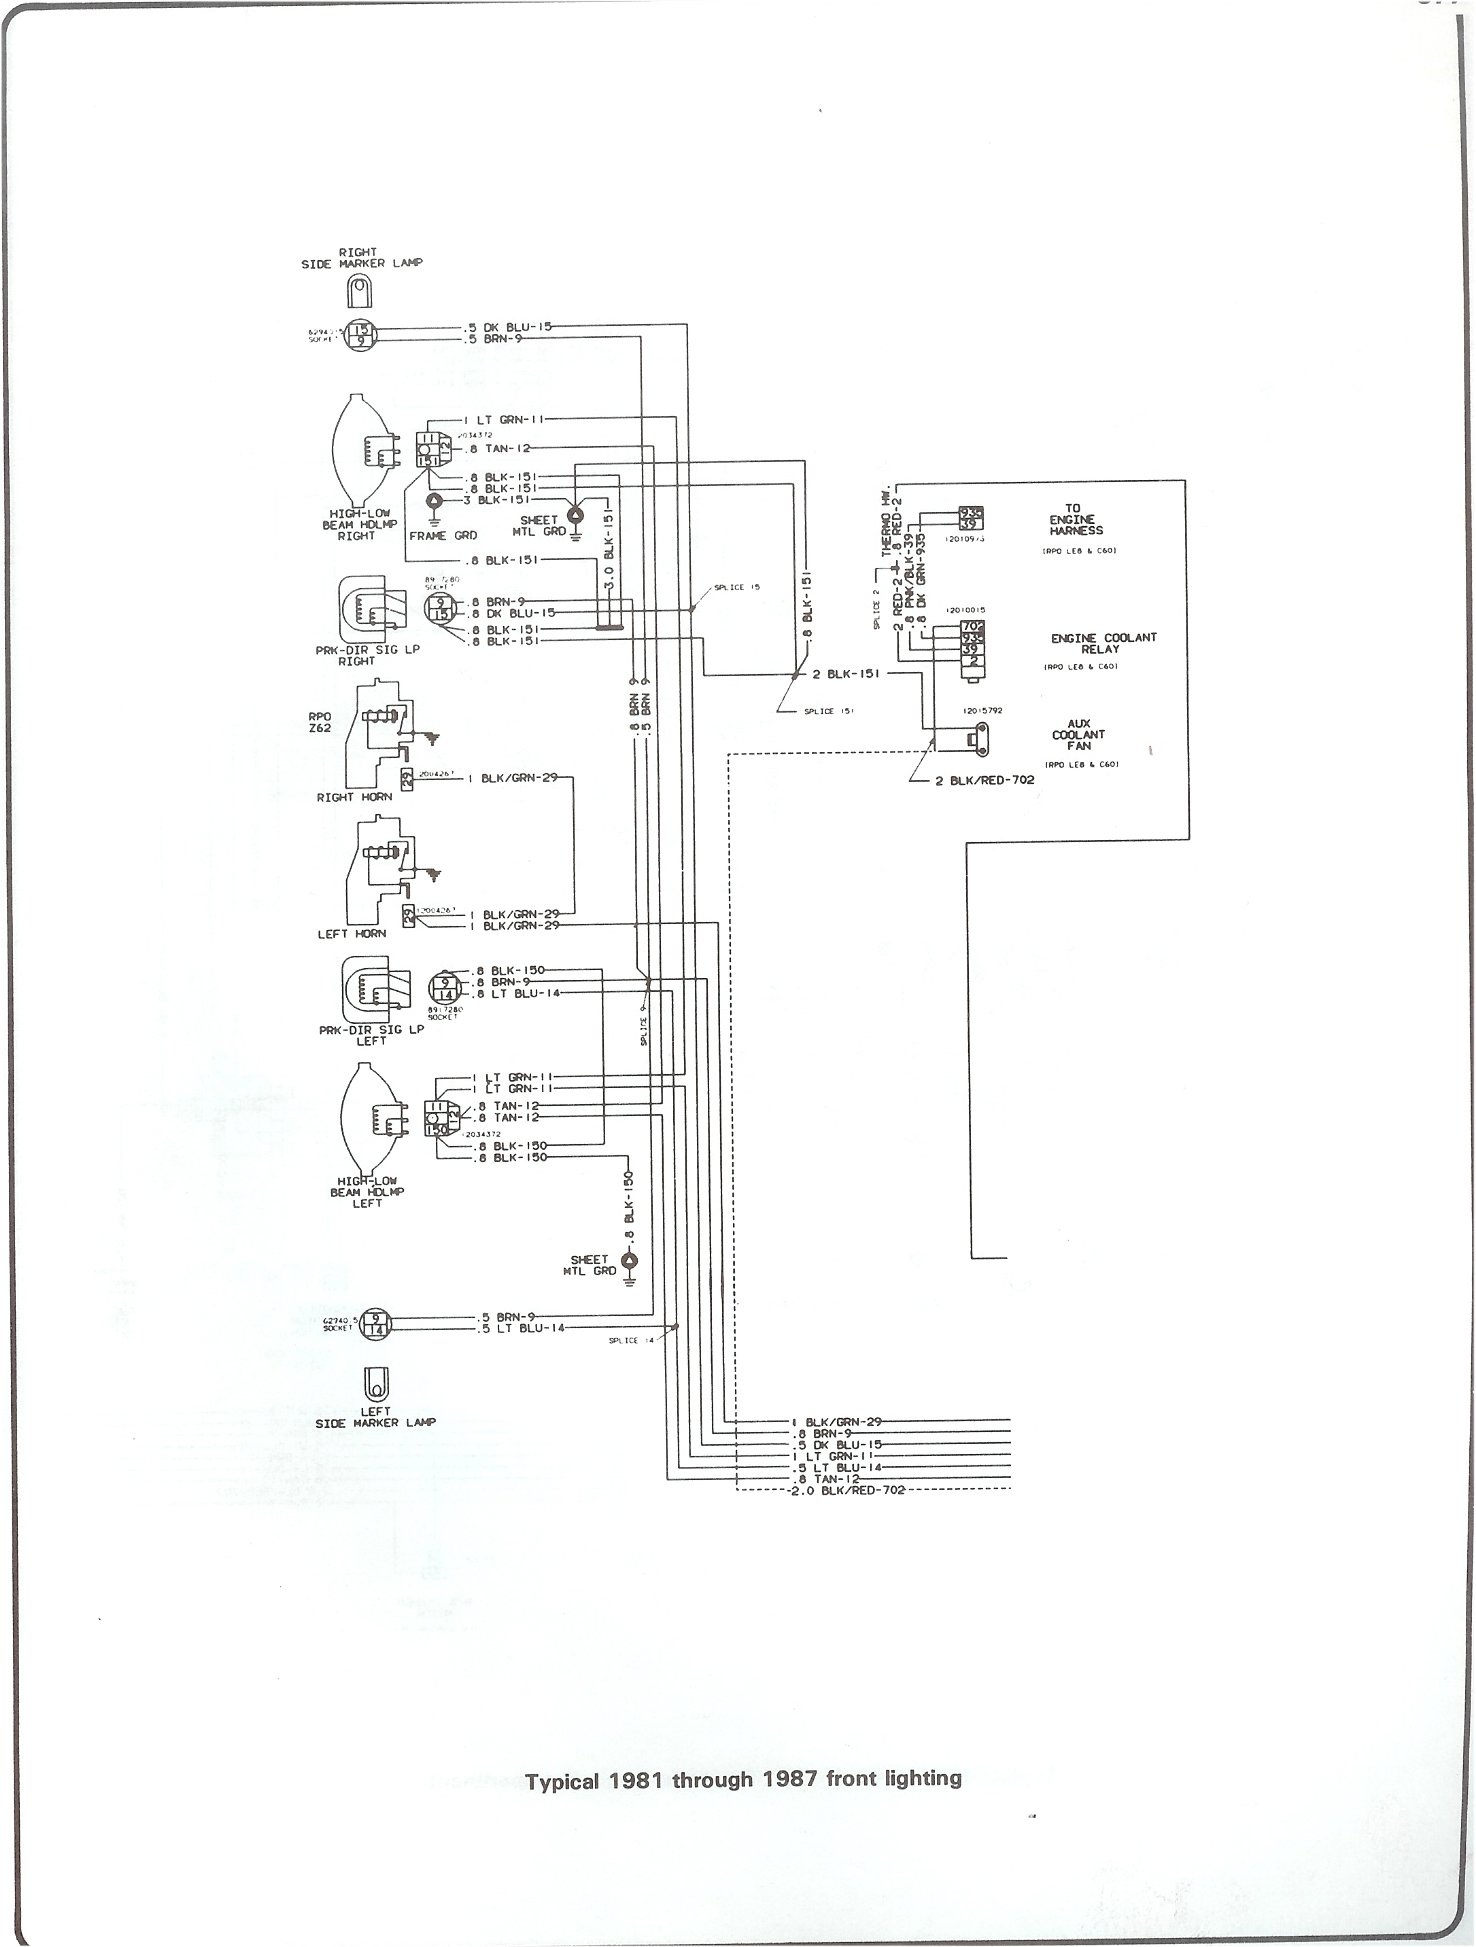 1953 Chevy Bel Air Headlight Switch Wiring Diagram Library 1956 81 87 Front Lighting